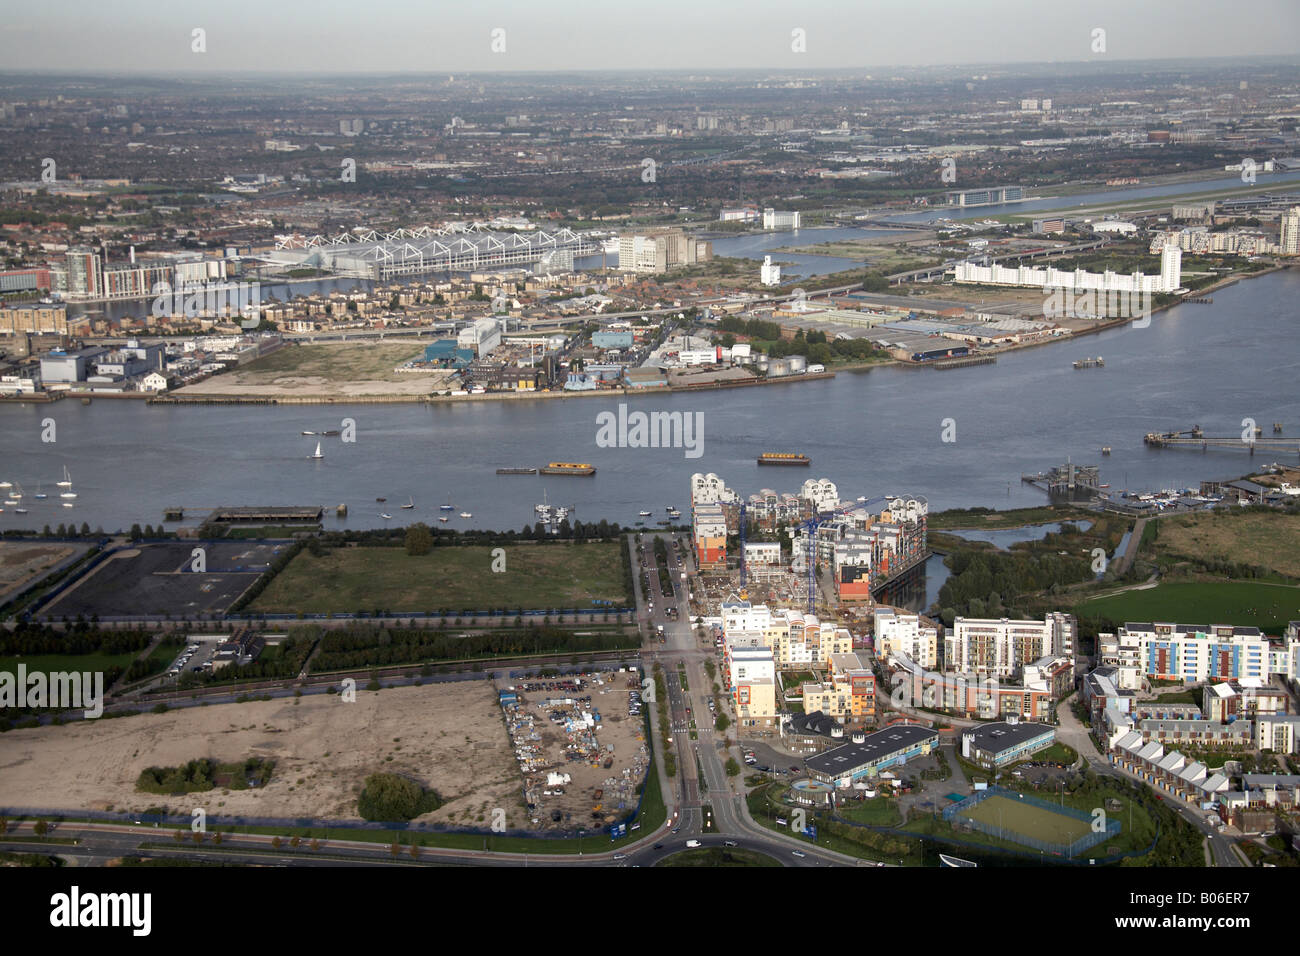 Aerial view north east of Greenwich Peninsula Ecology Park John Harrison Way River Thames Royal Victoria Dock London - Stock Image